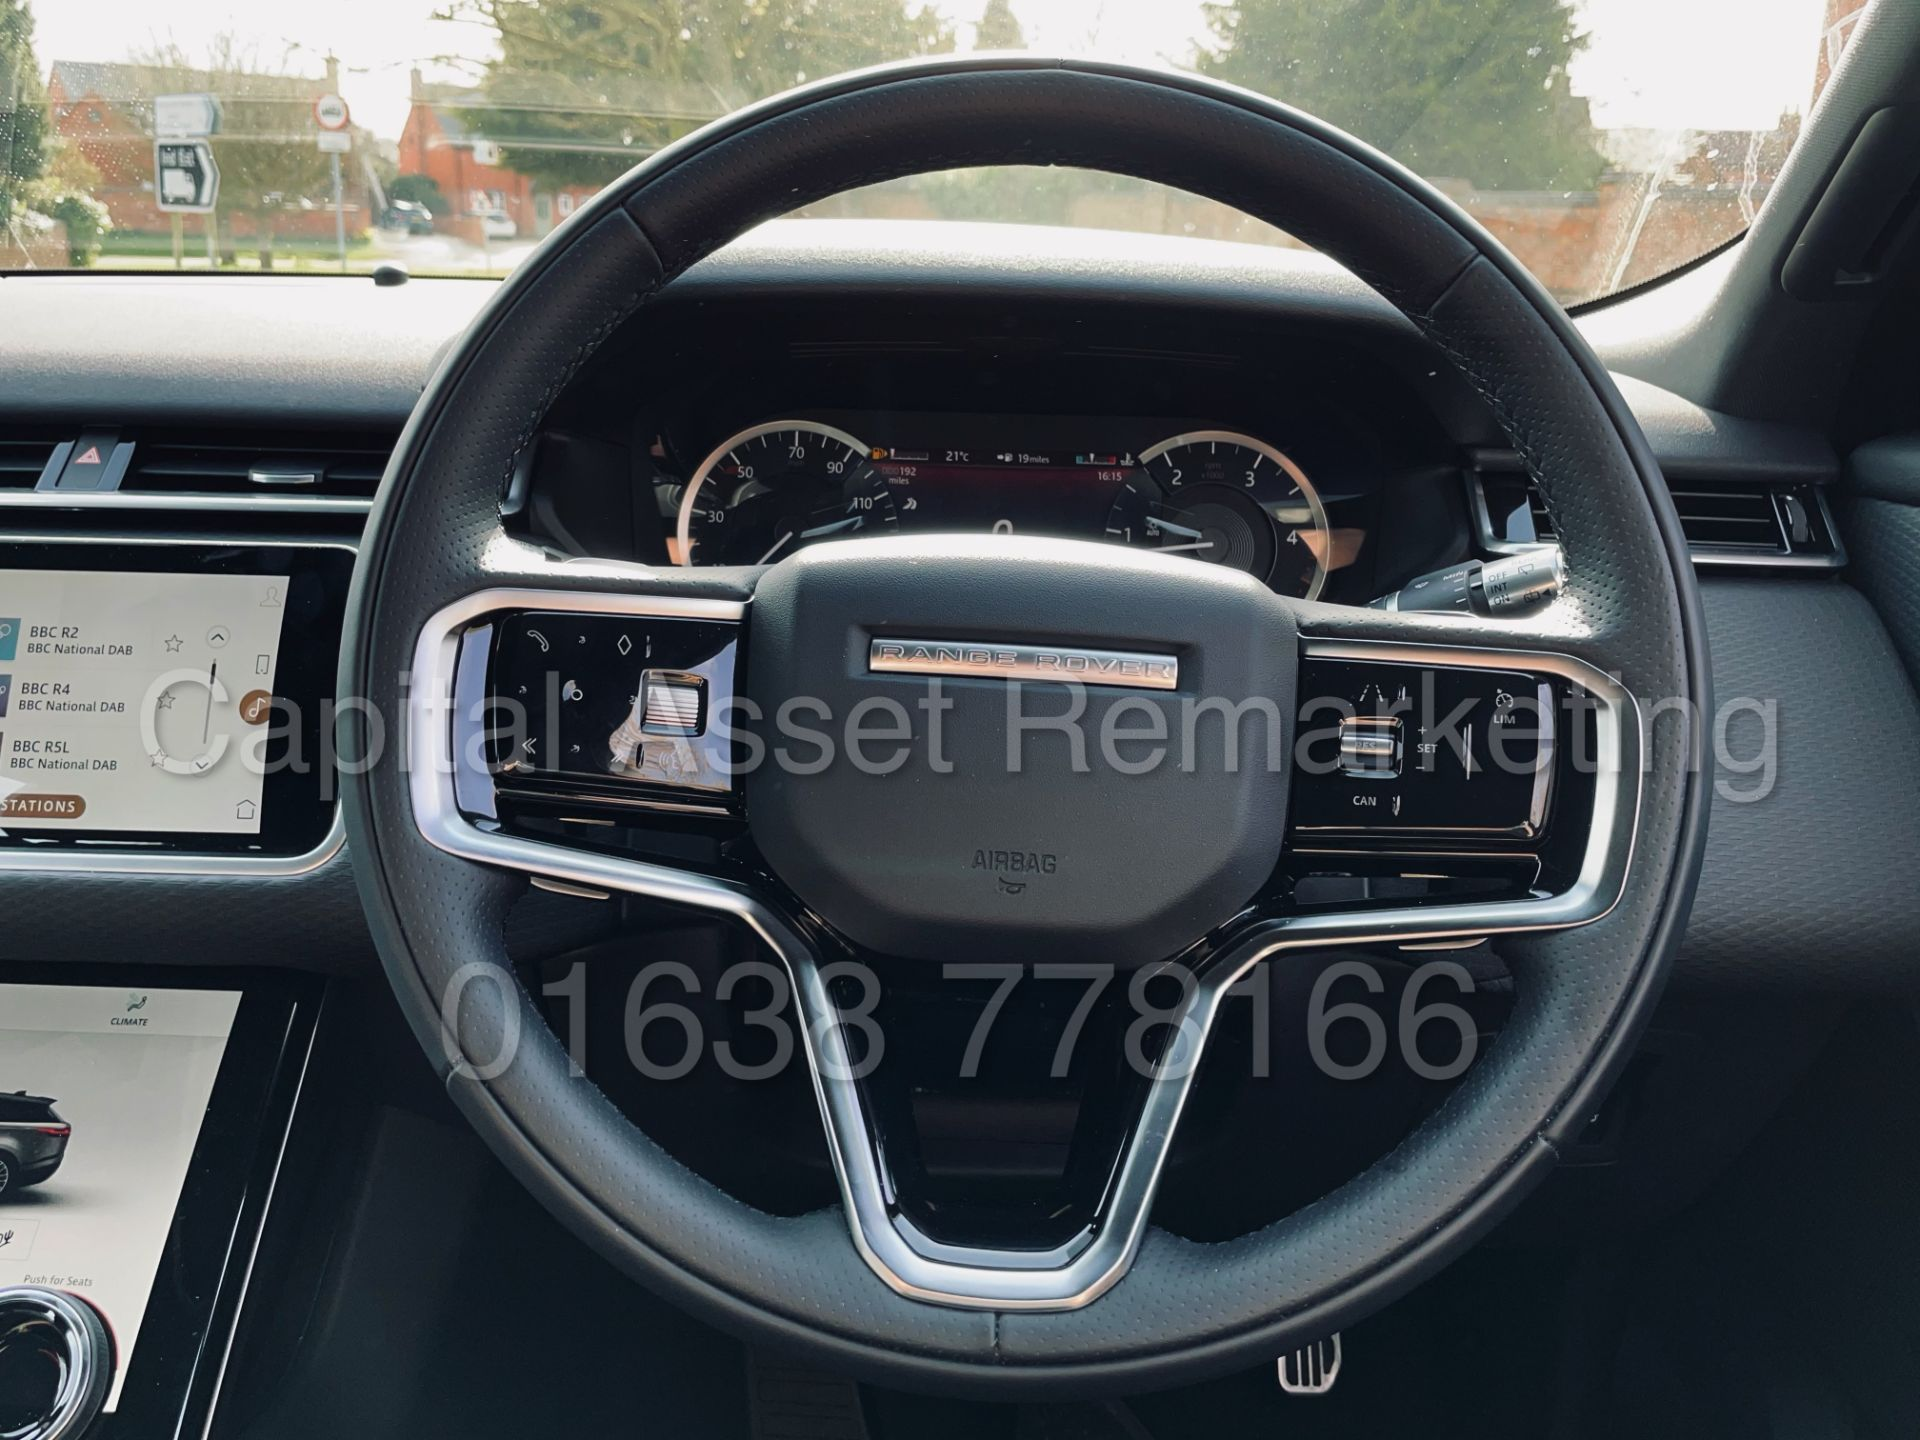 (On Sale) RANGE ROVER VELAR *R-DYNAMIC* SUV (2021) *8 SPEED AUTO - LEATHER* (DELIVERY MILES) - Image 48 of 50